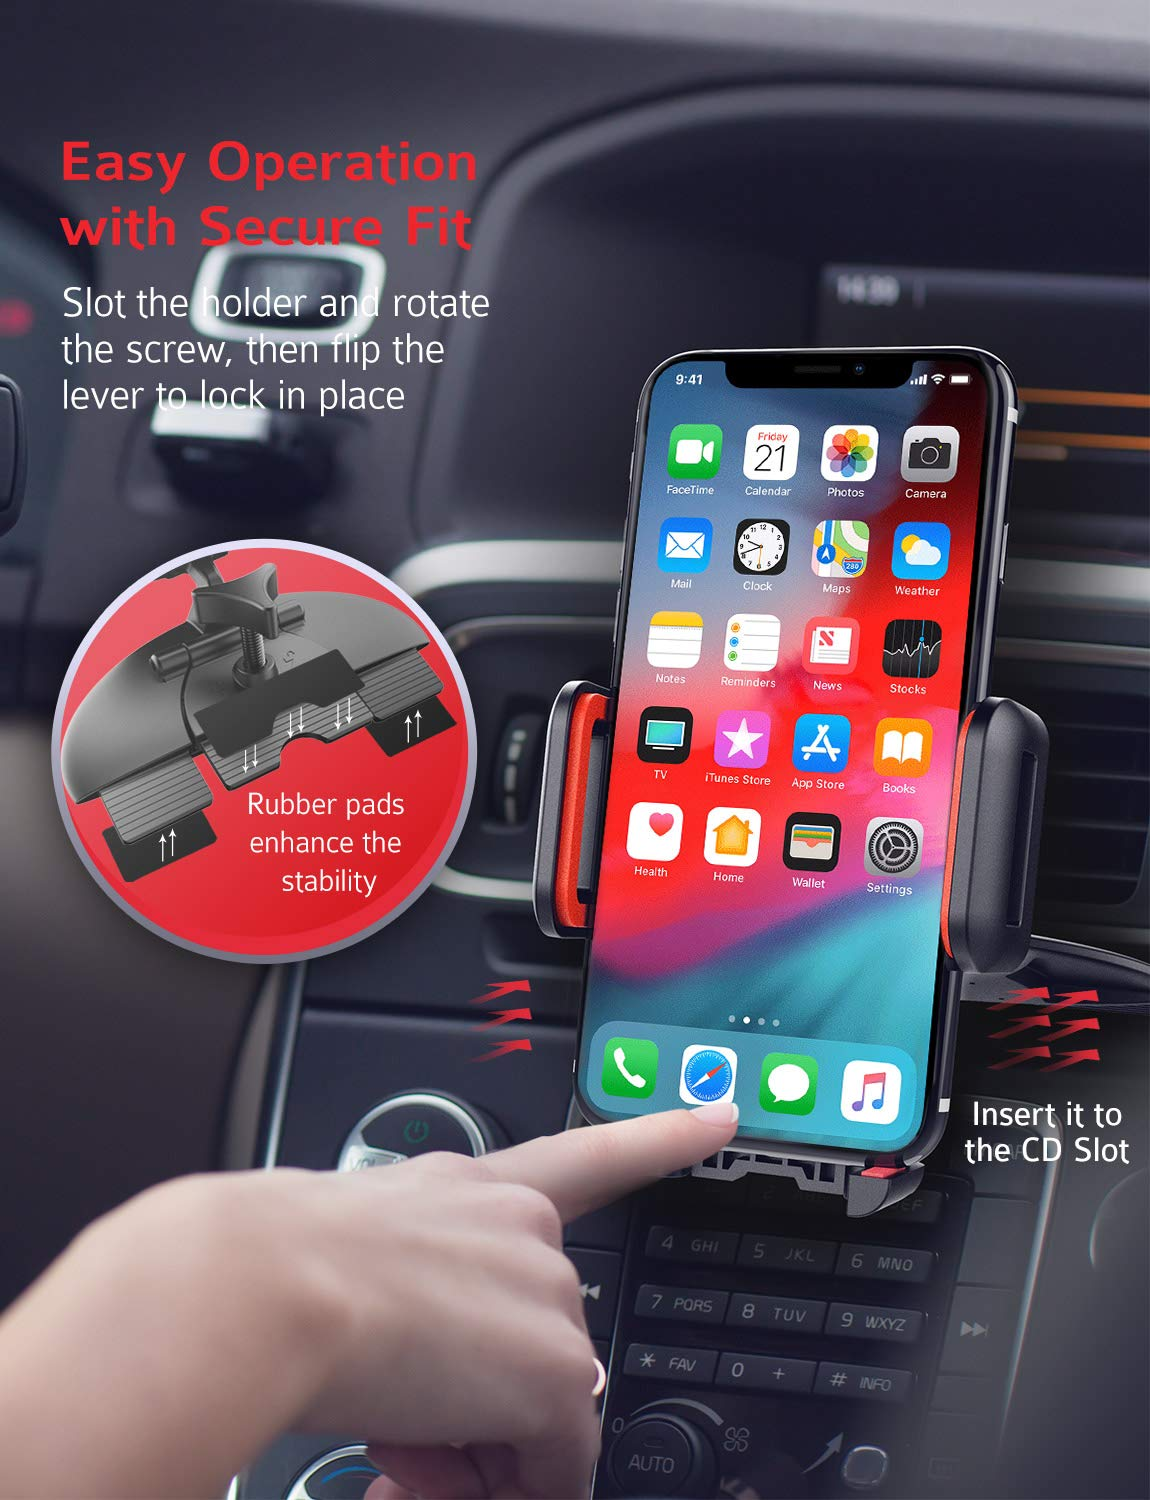 Mpow 051 Car Phone Mount, CD Slot Car Phone Holder, Car Mount with Three-Side Grips and One-Touch Design Compatible iPhone Xs MAX/XR/XS/X/8/8Plus, Galaxy S10/S10+/S10e/S9/S9+/N9/S8, Google, Huawei etc by Mpow (Image #3)